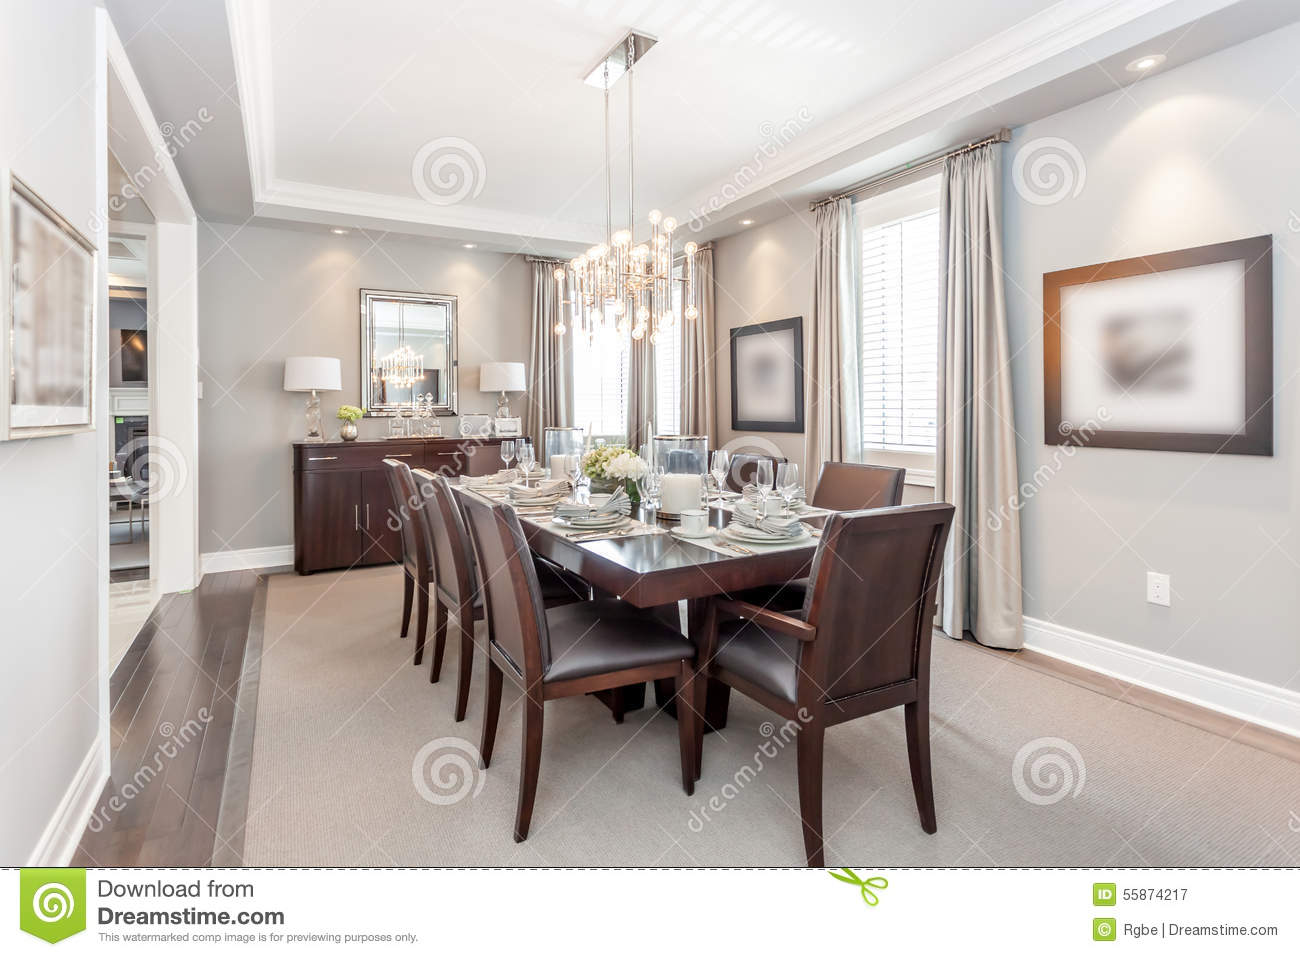 Dining Room Stock Photo  Image 55874217